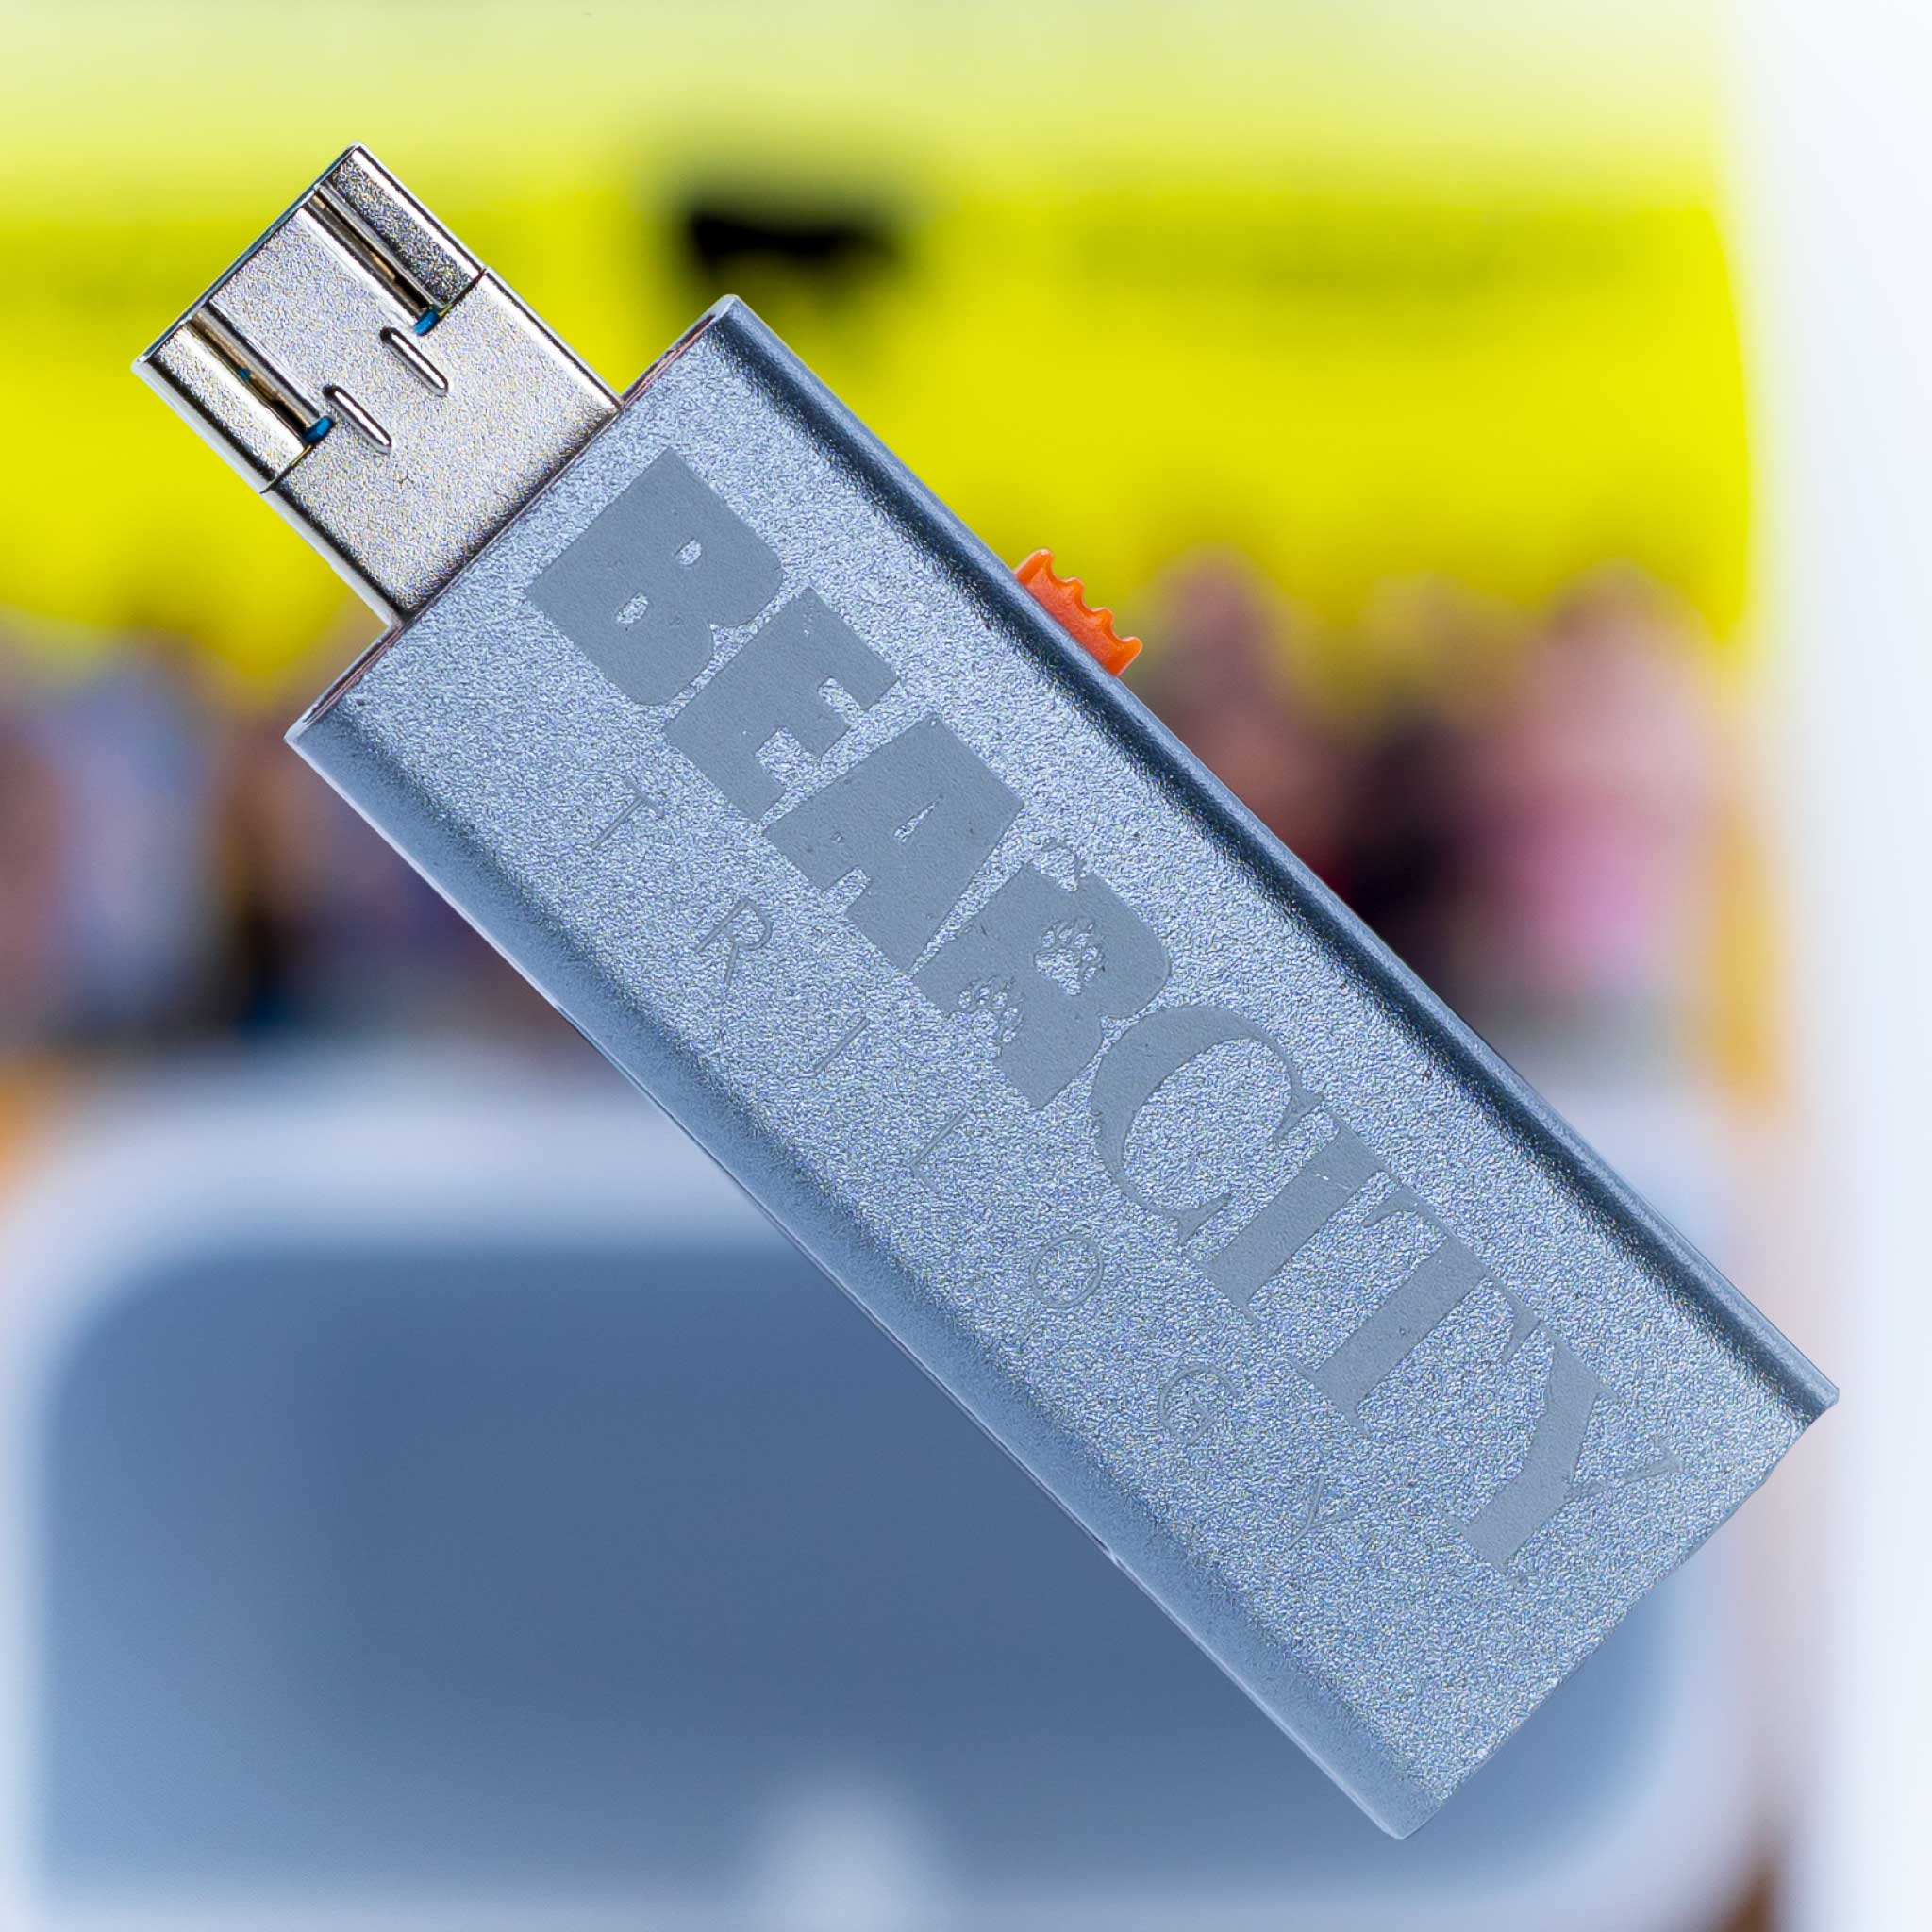 3-in-1 USB FLASH DRIVE! TV, Mobile & Tablet.